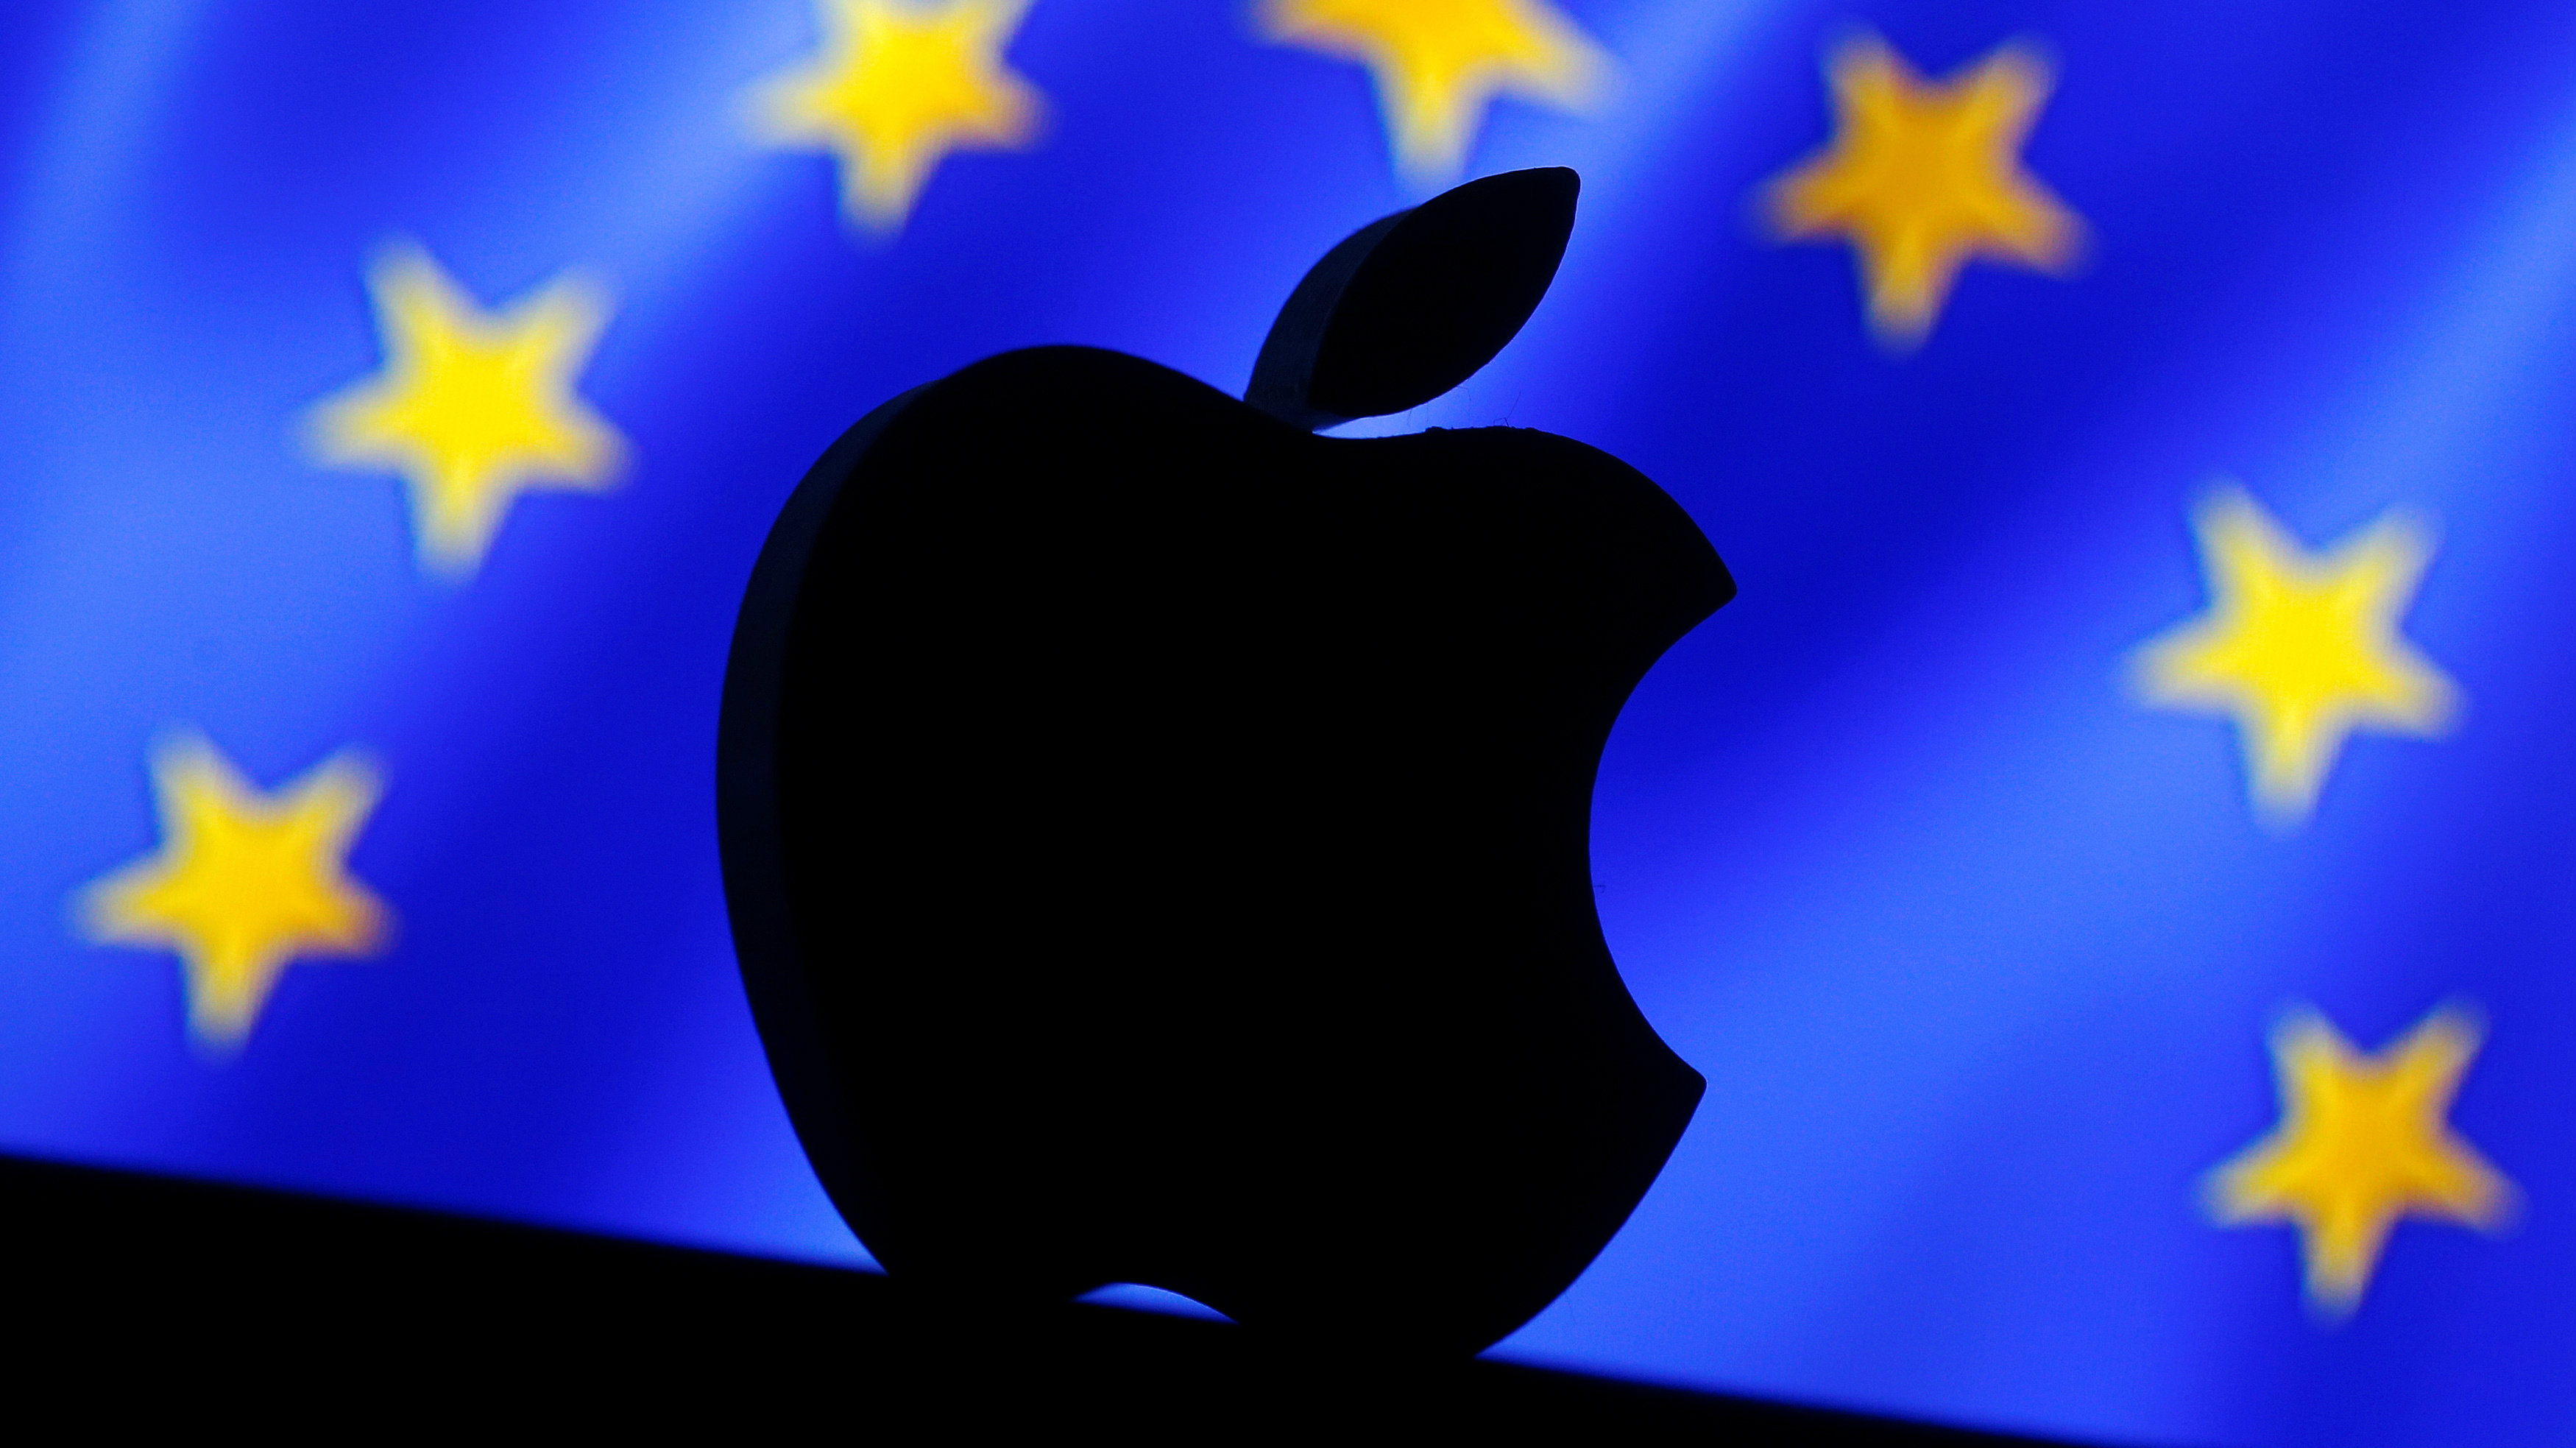 A 3D printed Apple logo is seen in front of a displayed European Union flag in this illustration taken September 2, 2016. REUTERS/Dado Ruvic/Illustration TPX IMAGES OF THE DAY